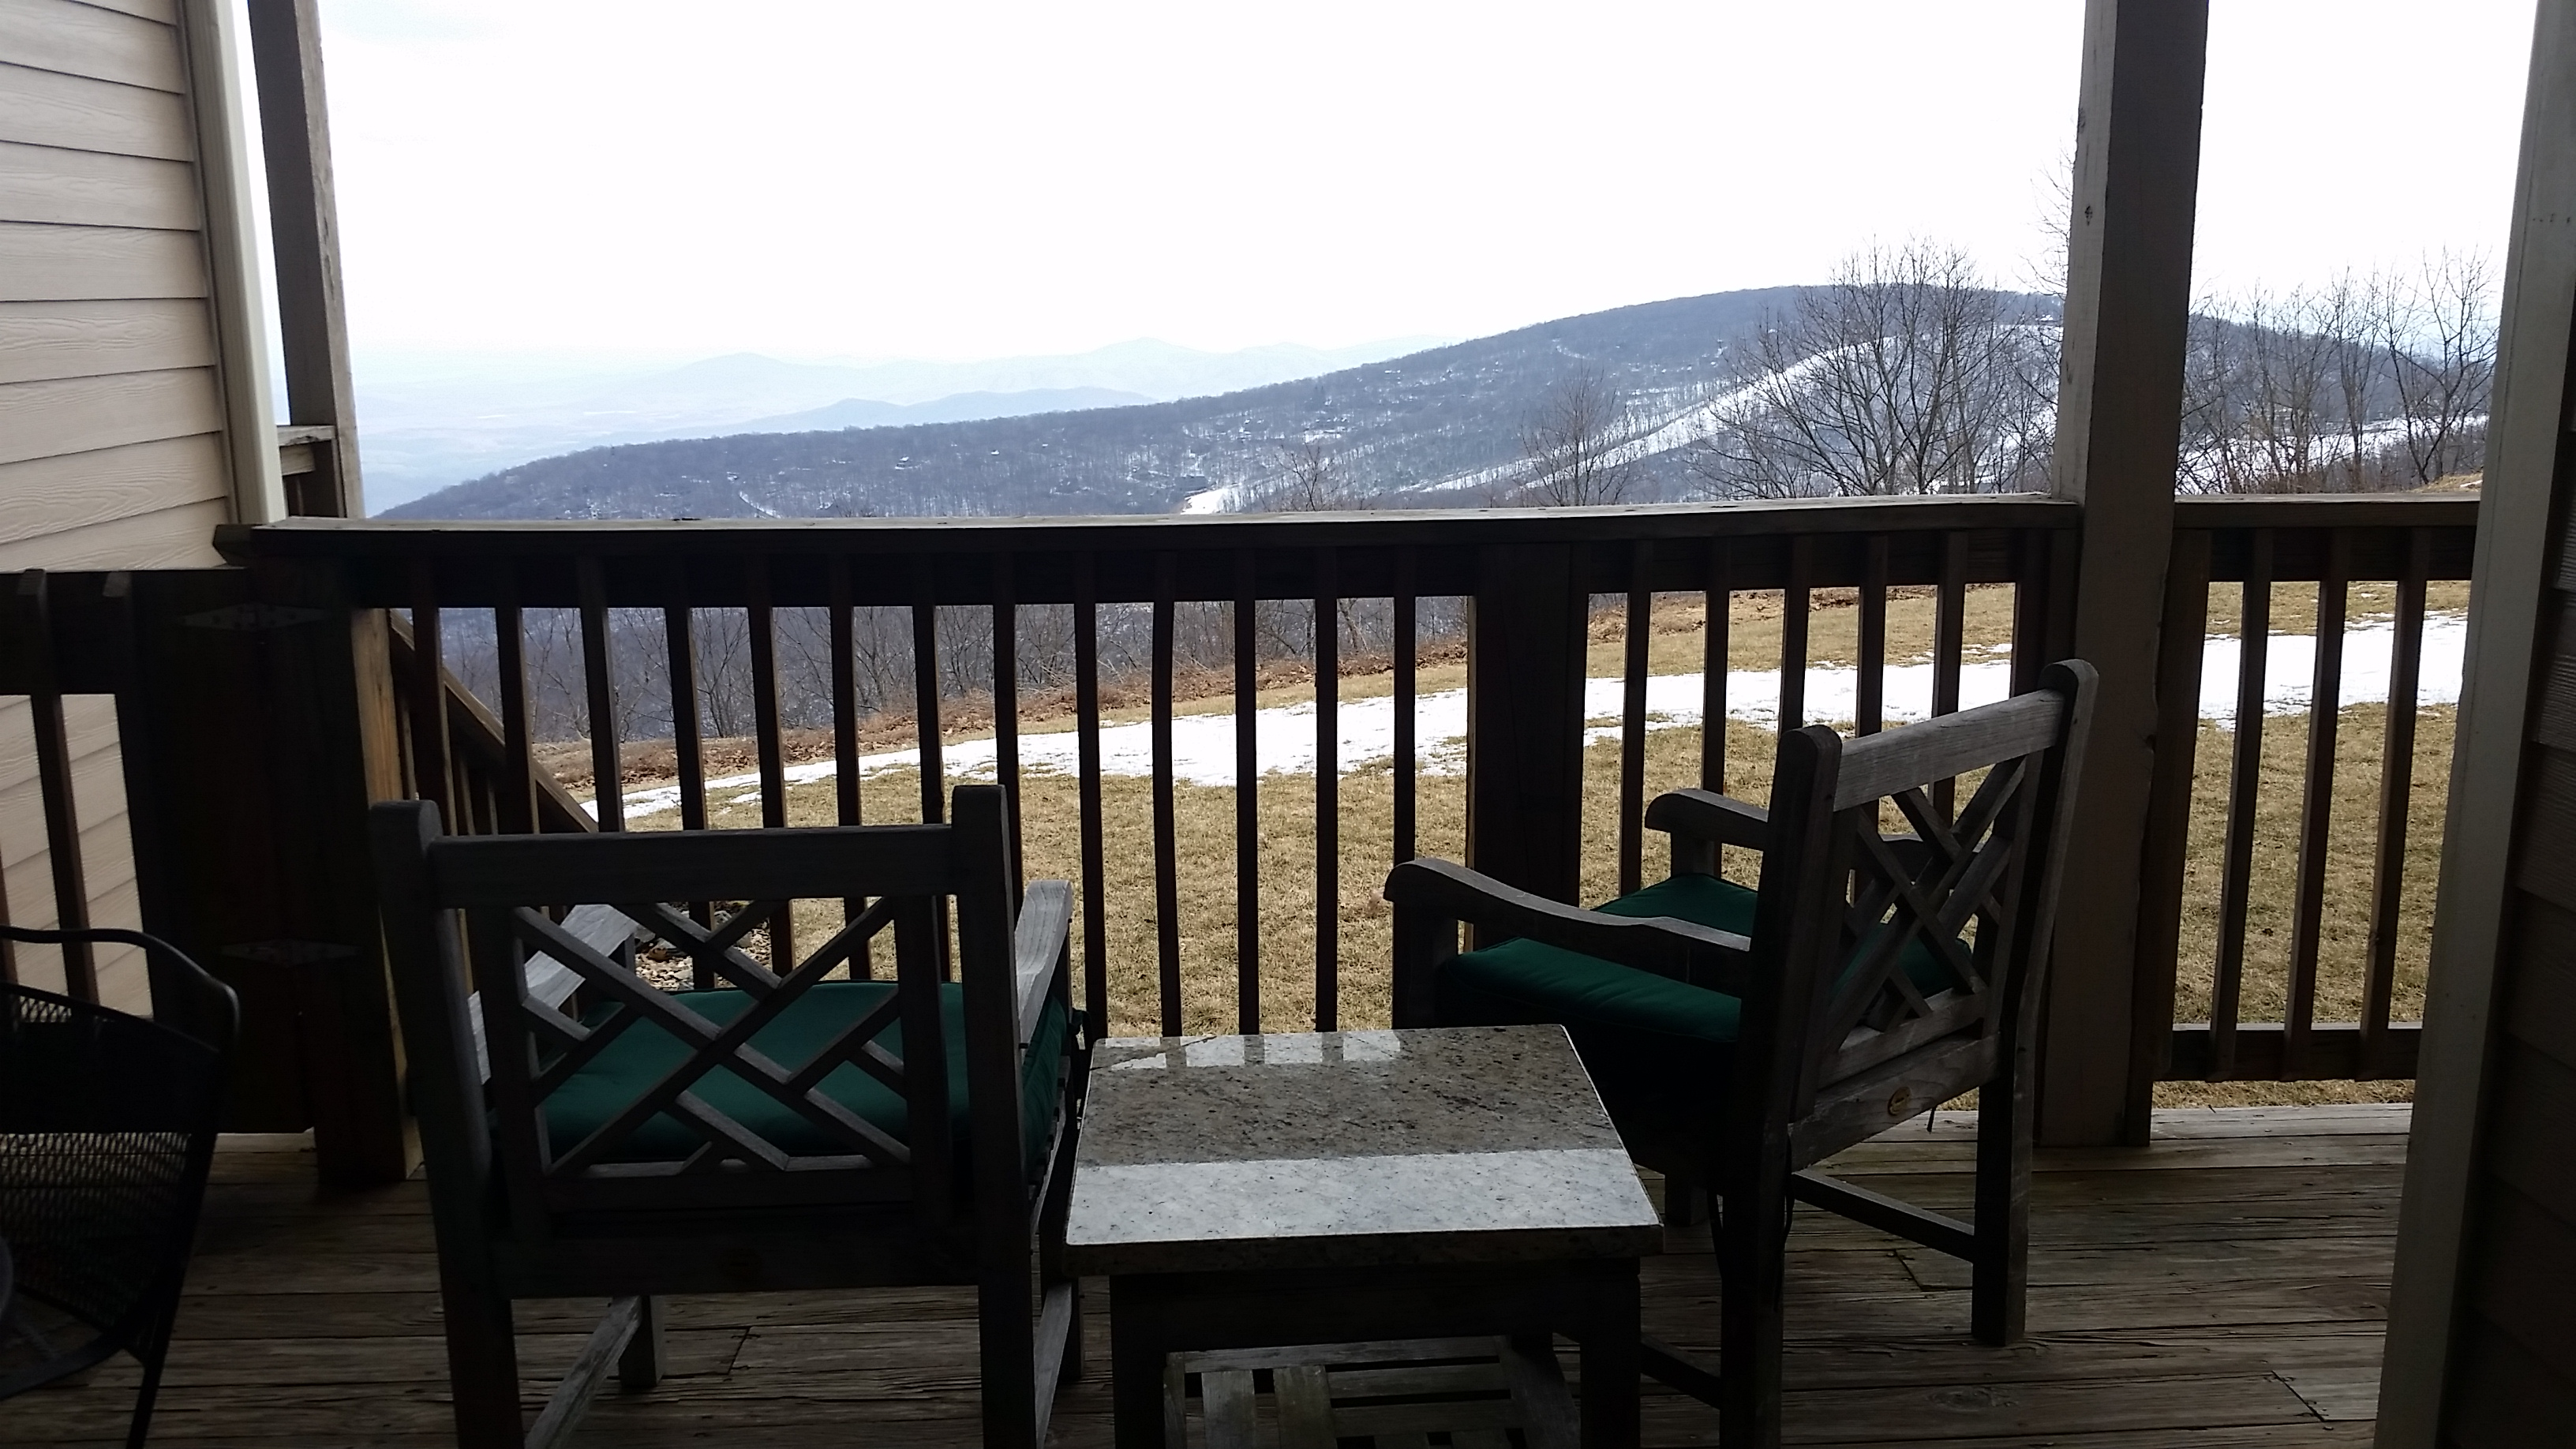 View of the mountains from the deck at Overlook condos, Wintergreen Resort in Virginia